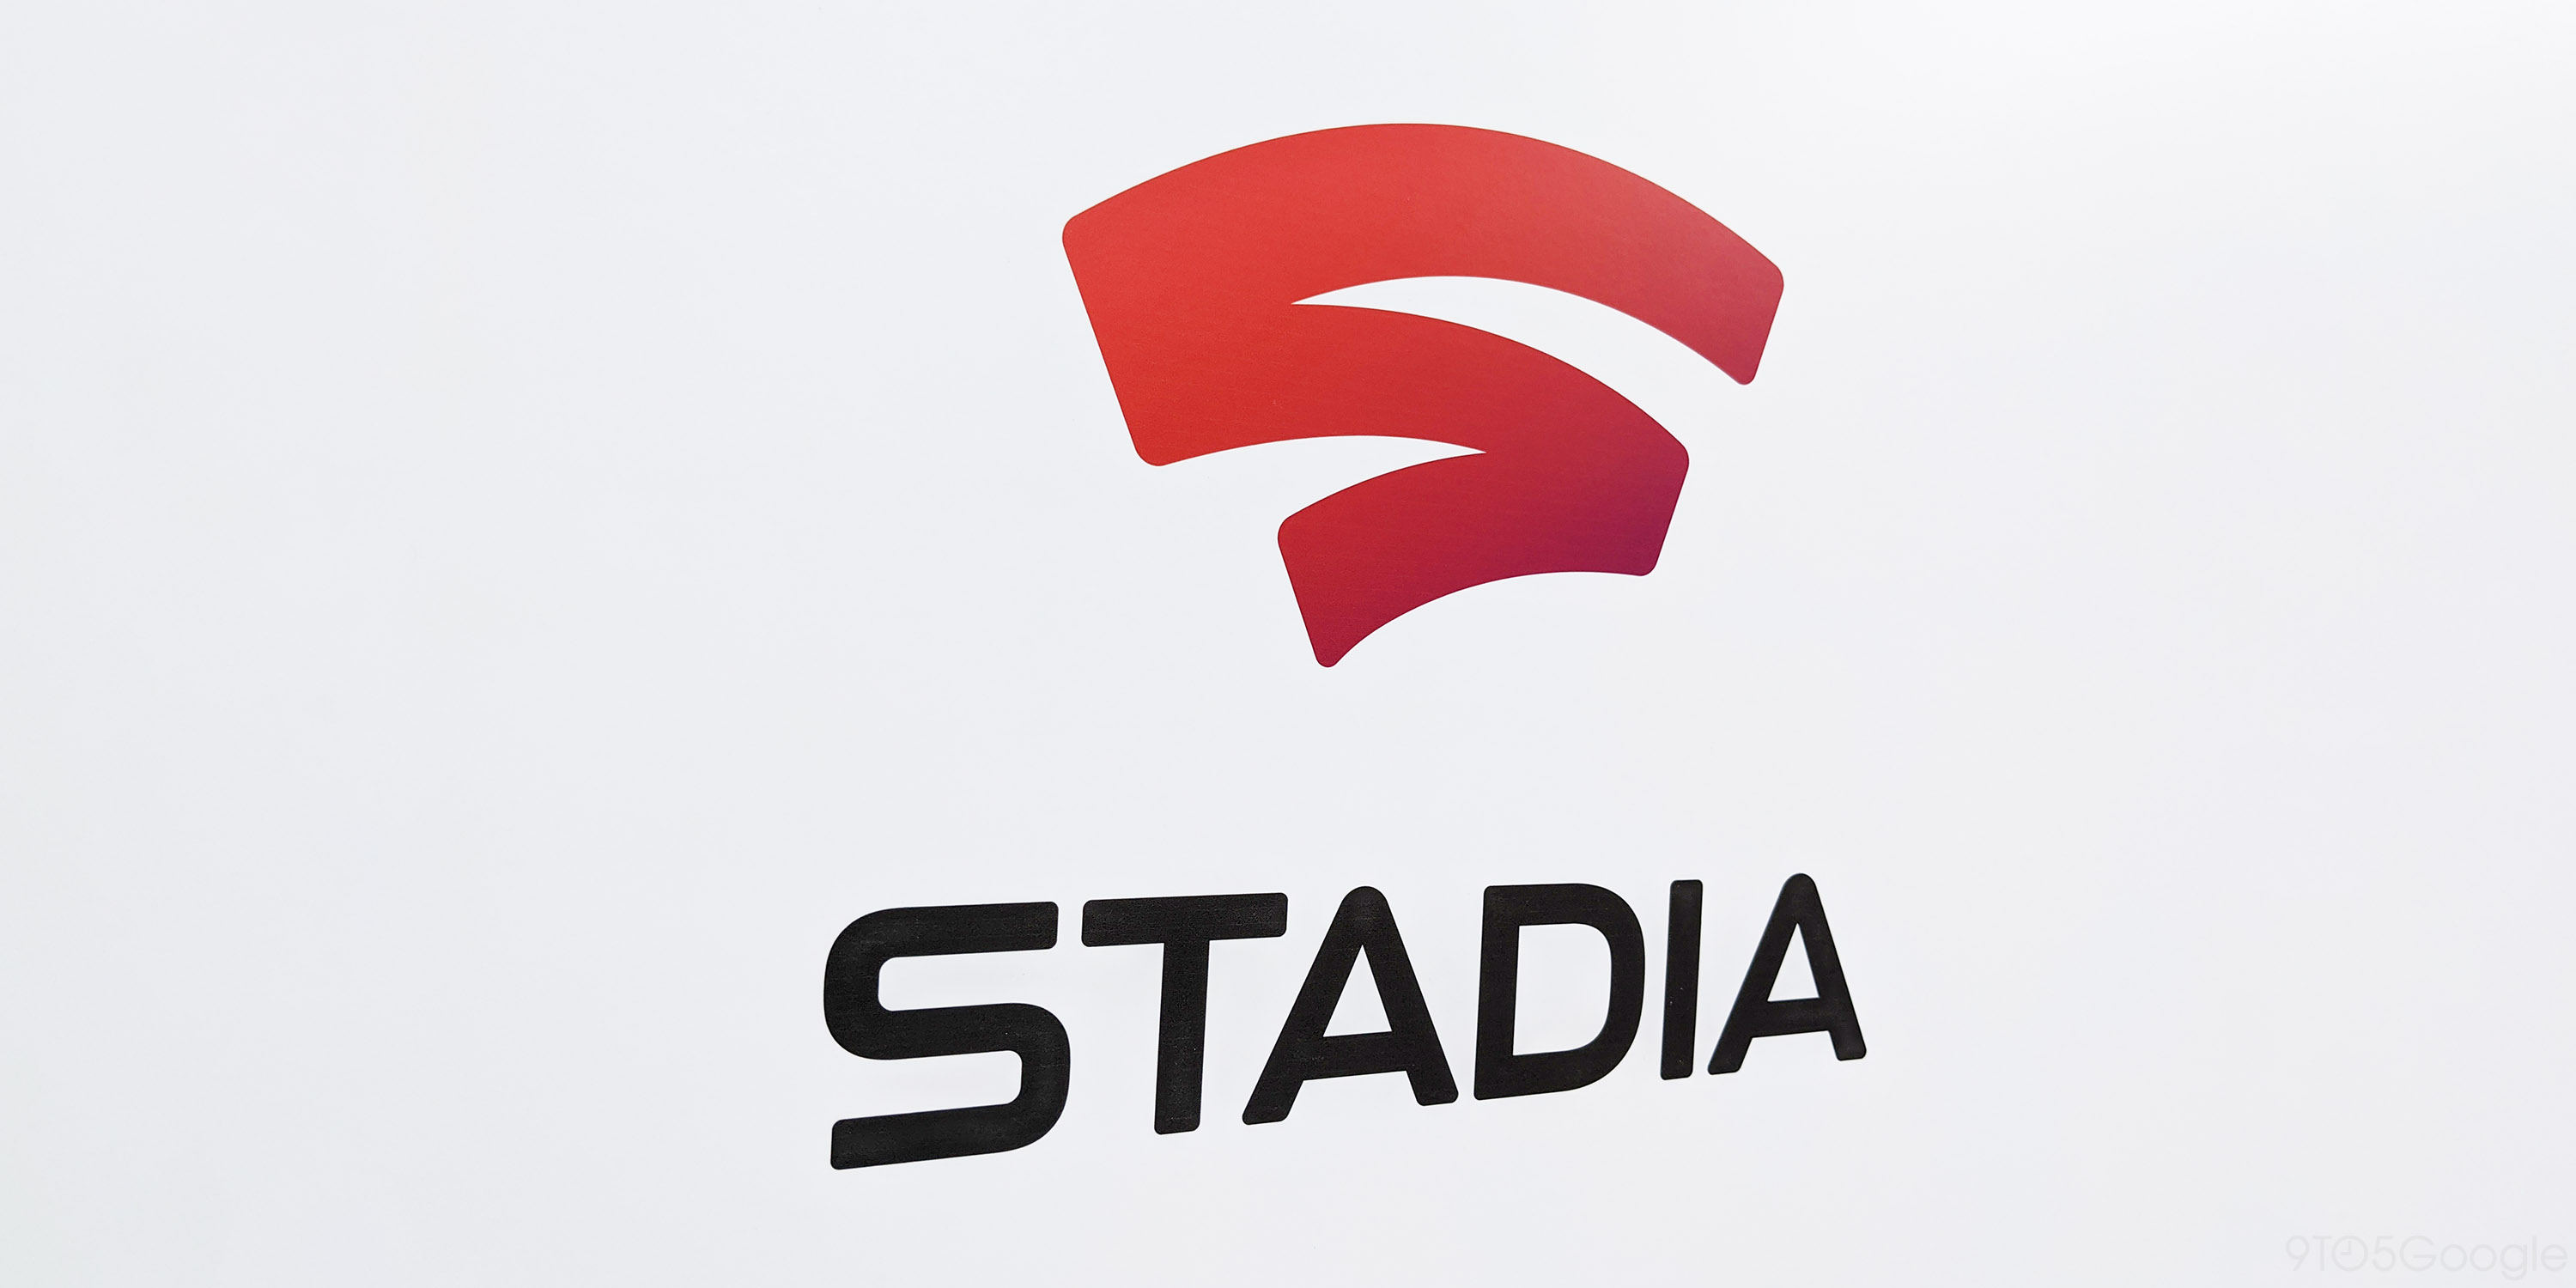 Here's Google Stadia running on an E-Reader because the future is awesome [Video]